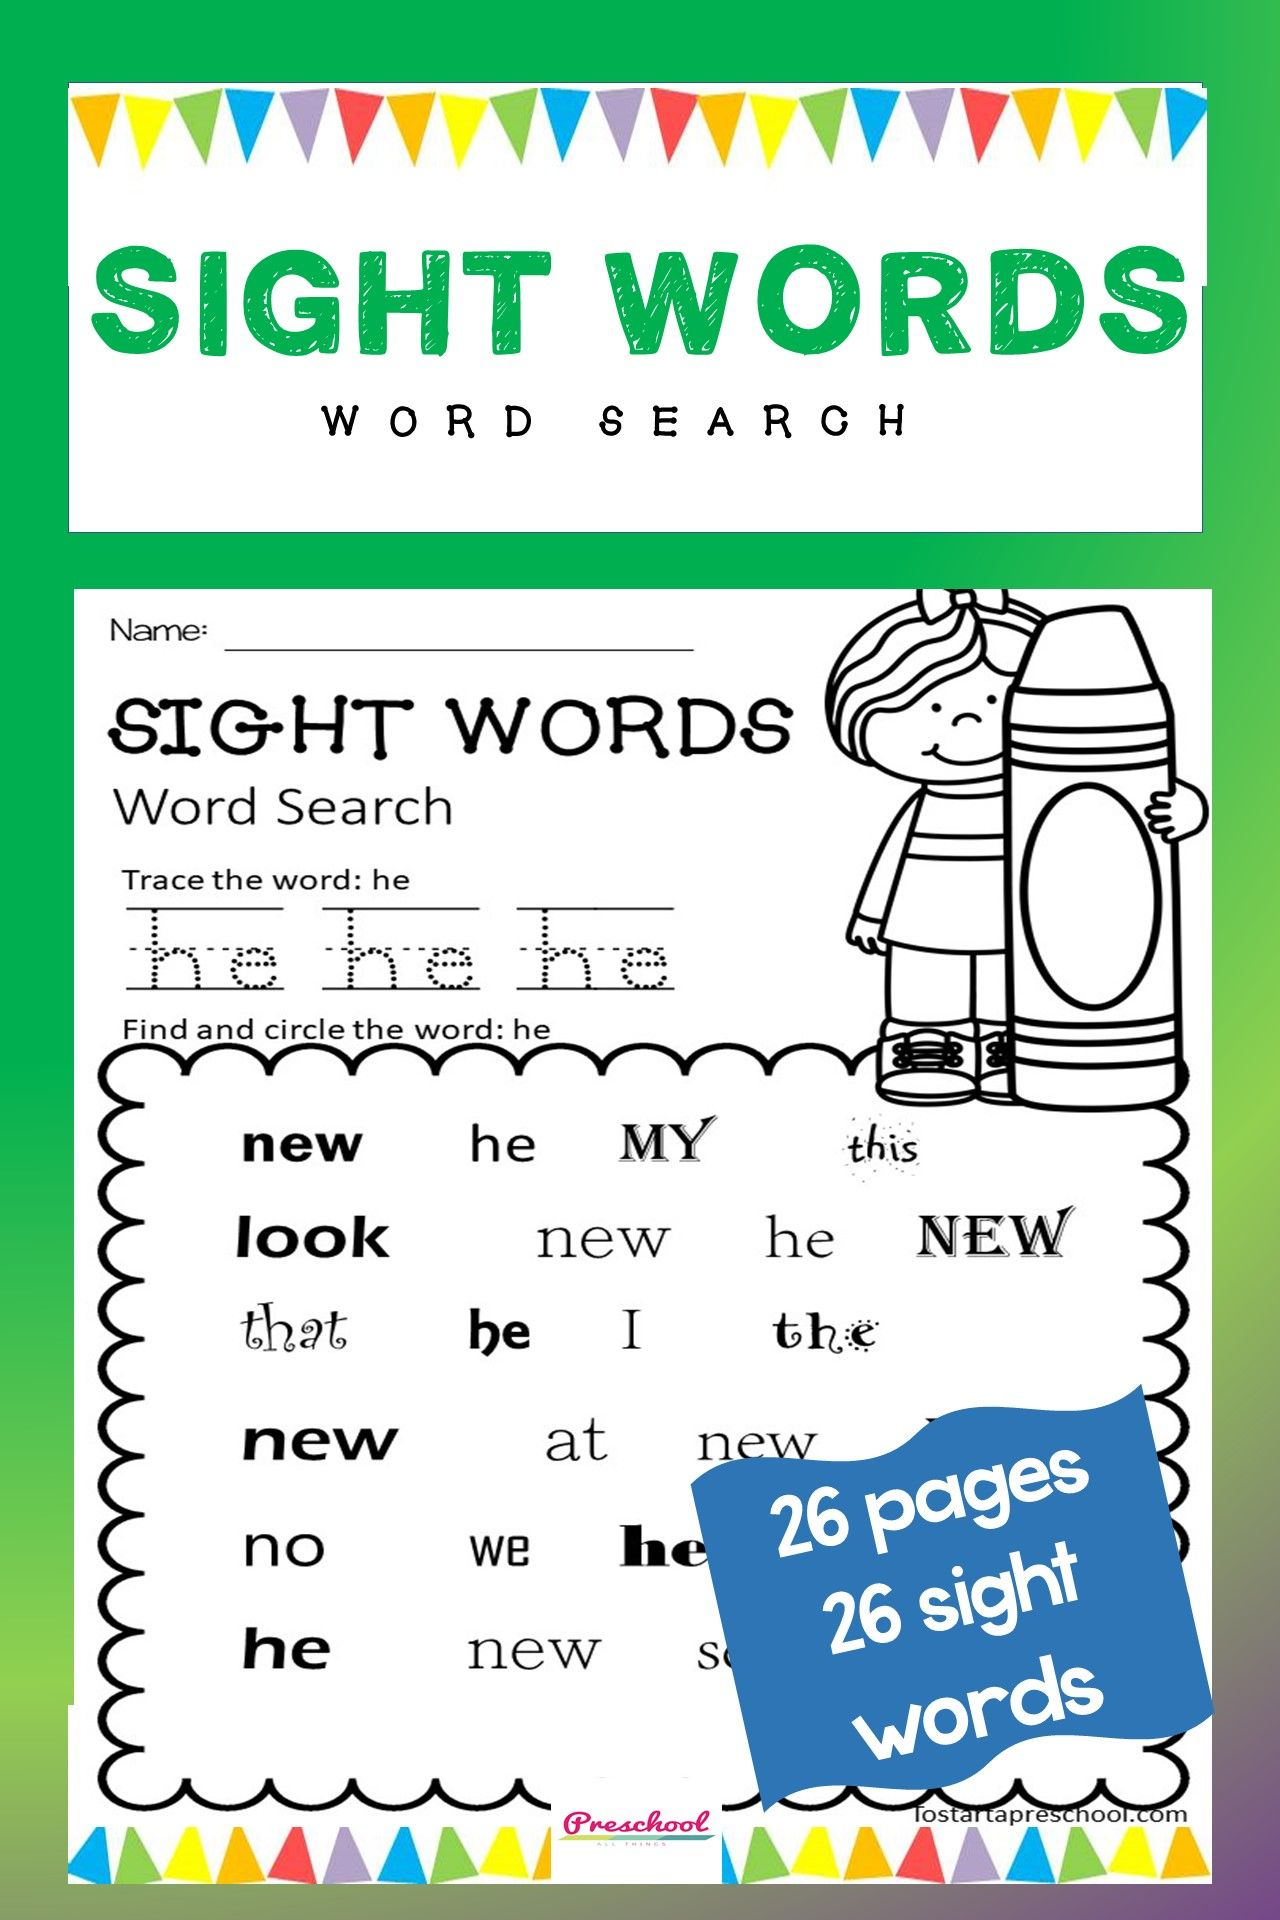 Sight Words Word Search In